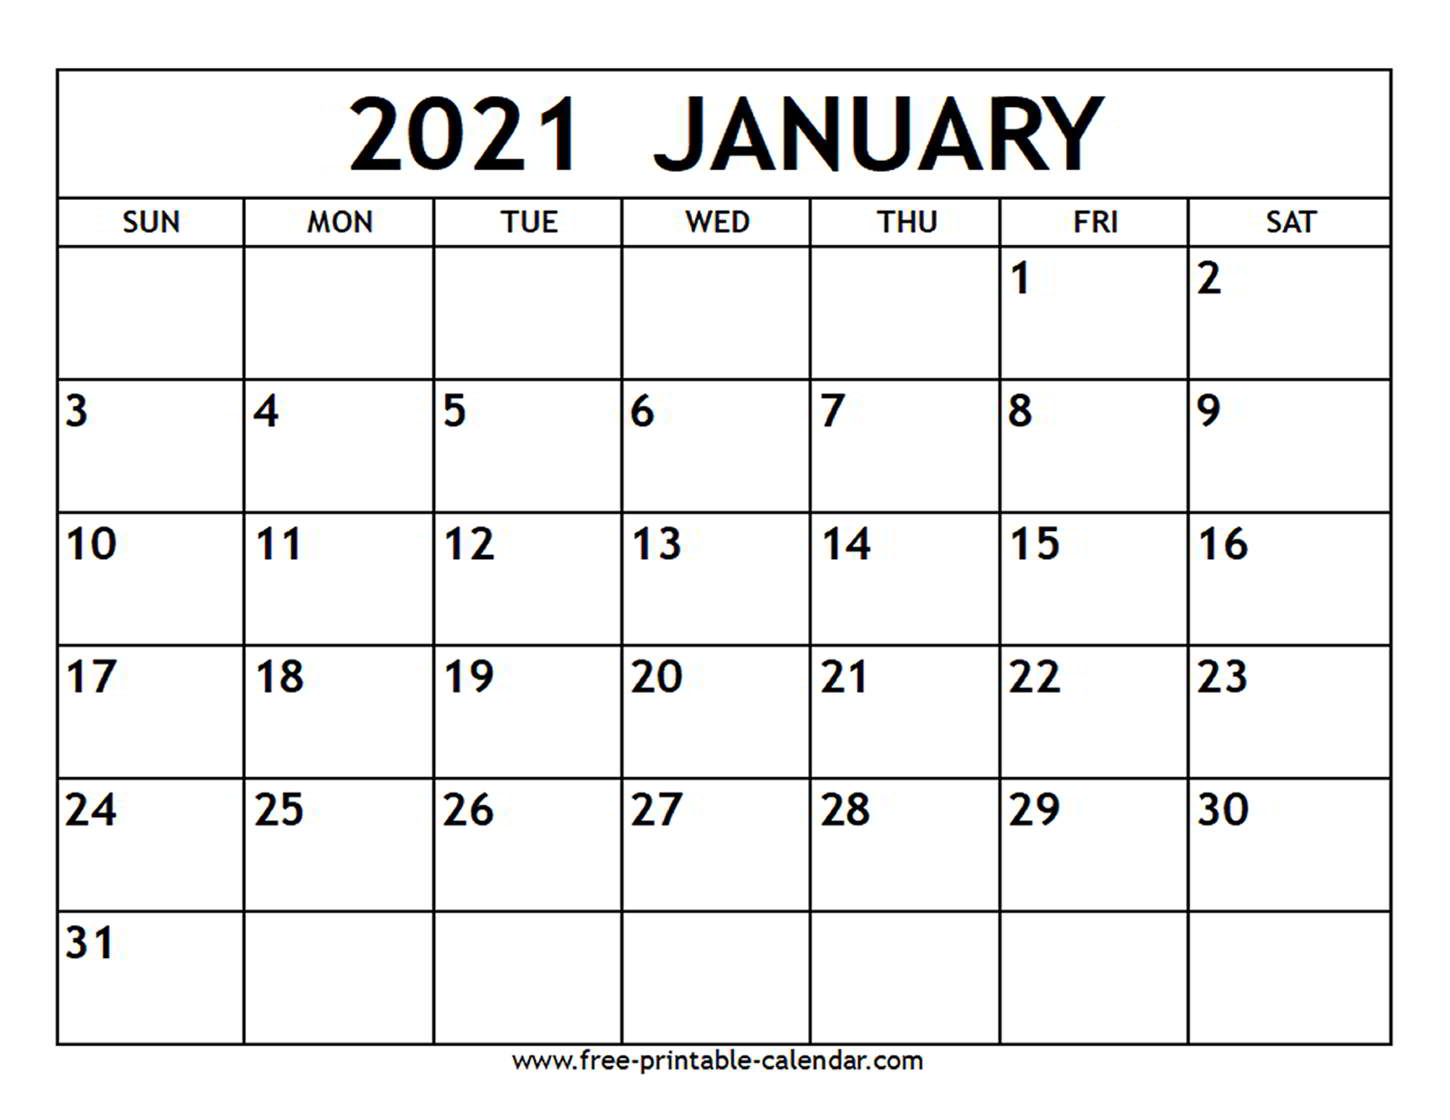 January 2021 Calendar - Free-Printable-Calendar with regard to Free Print 2021 Calendars Without Downloading